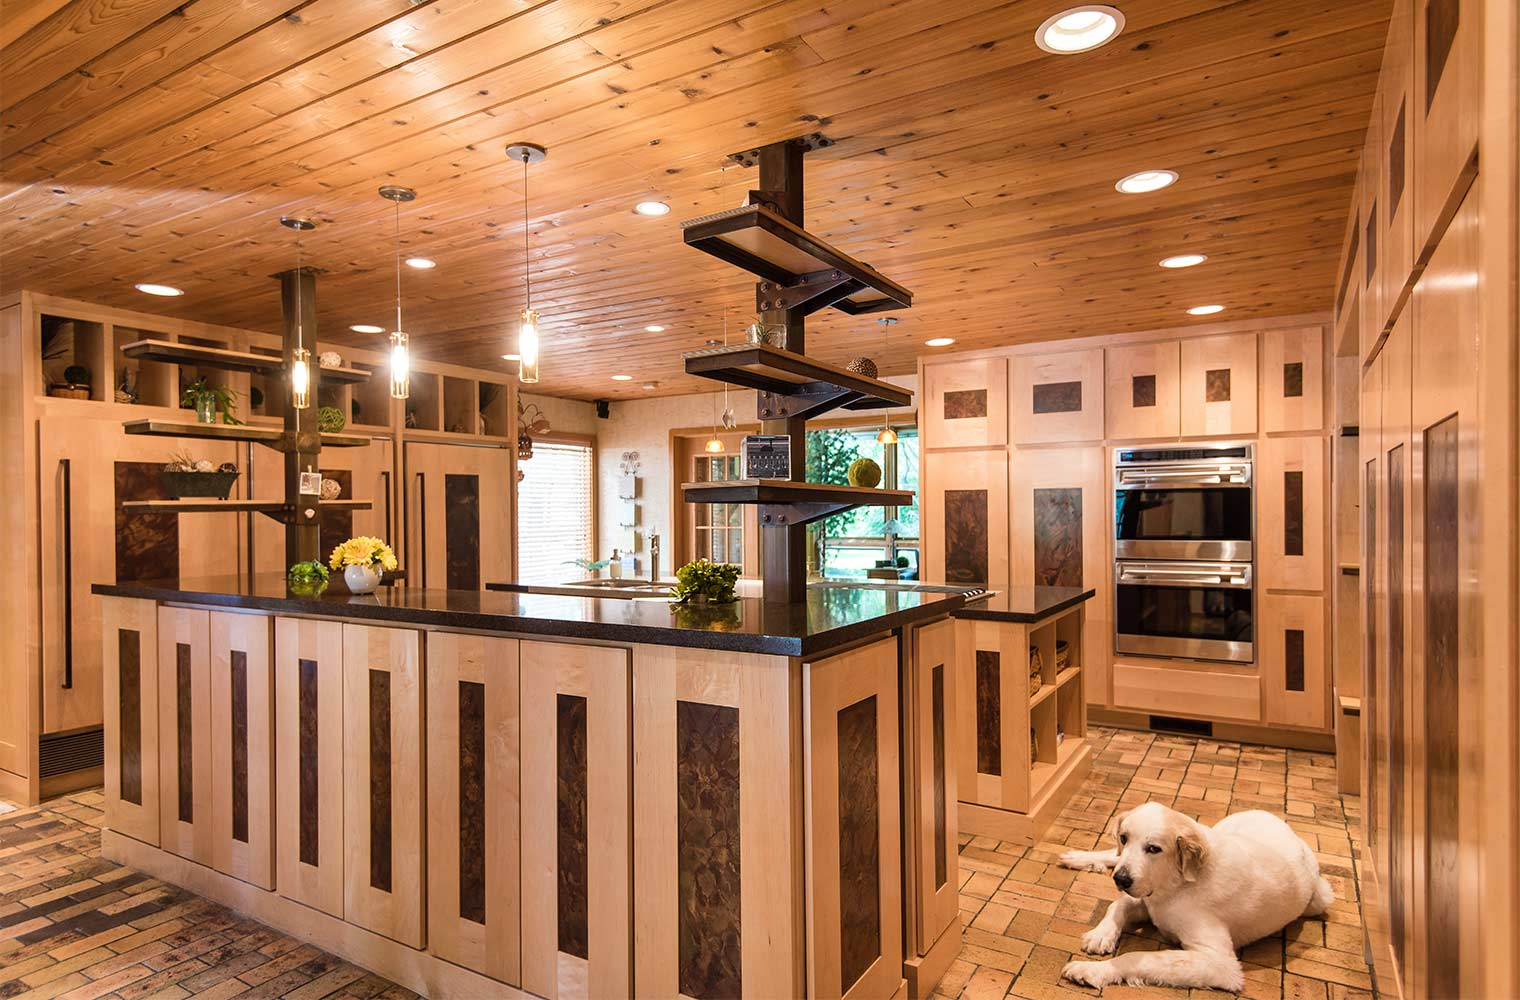 kitchen cabinets set farmhouse undermount sink maple and steel design standard in johnston home hide storage space two island with open for dog